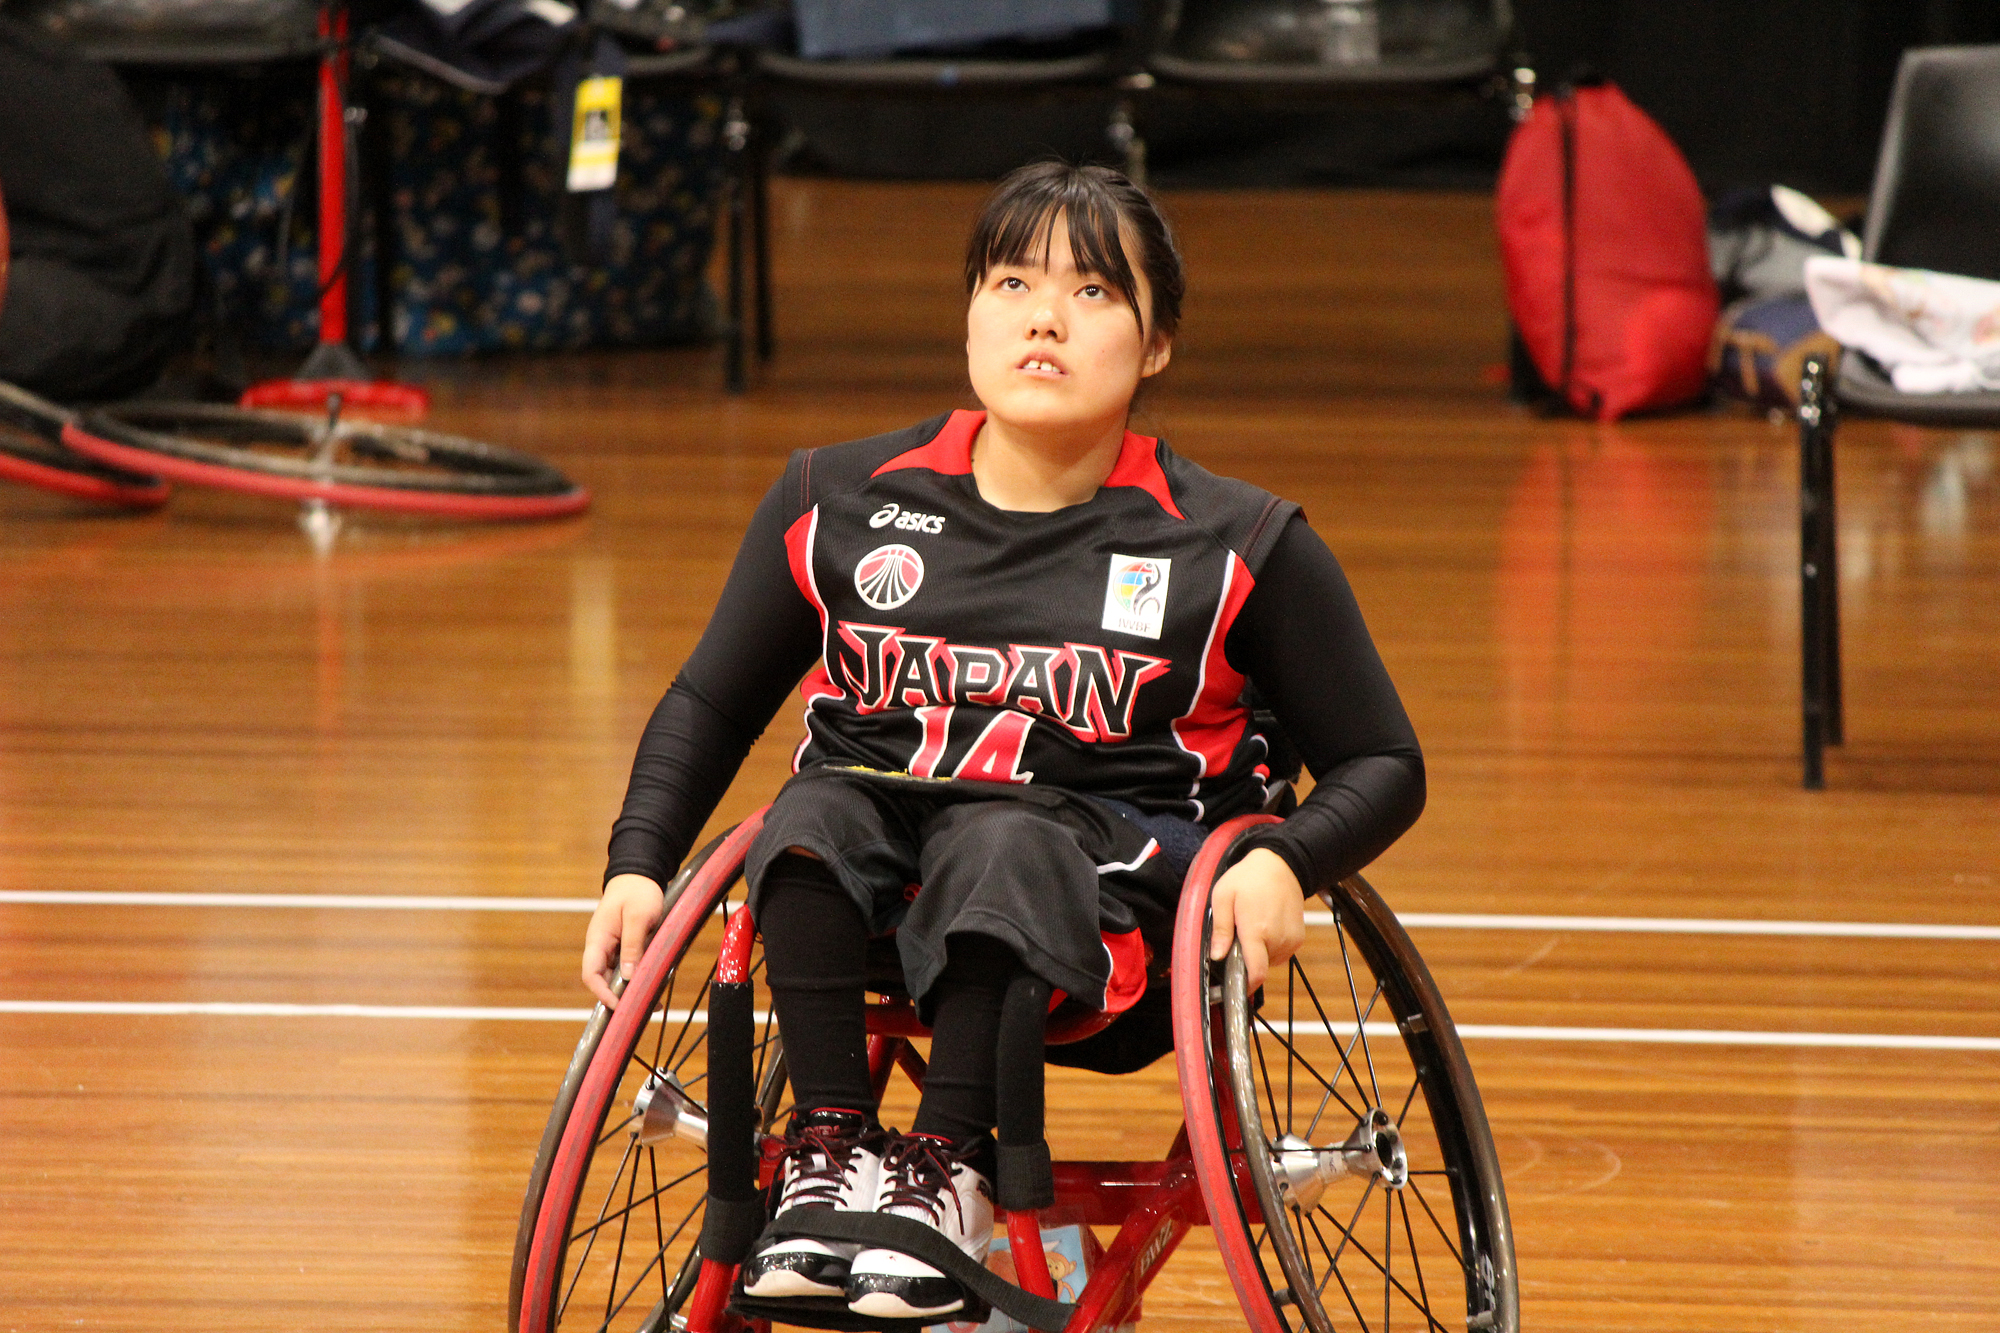 wheelchair japan graco blue owl high chair file germany vs women 39s basketball team